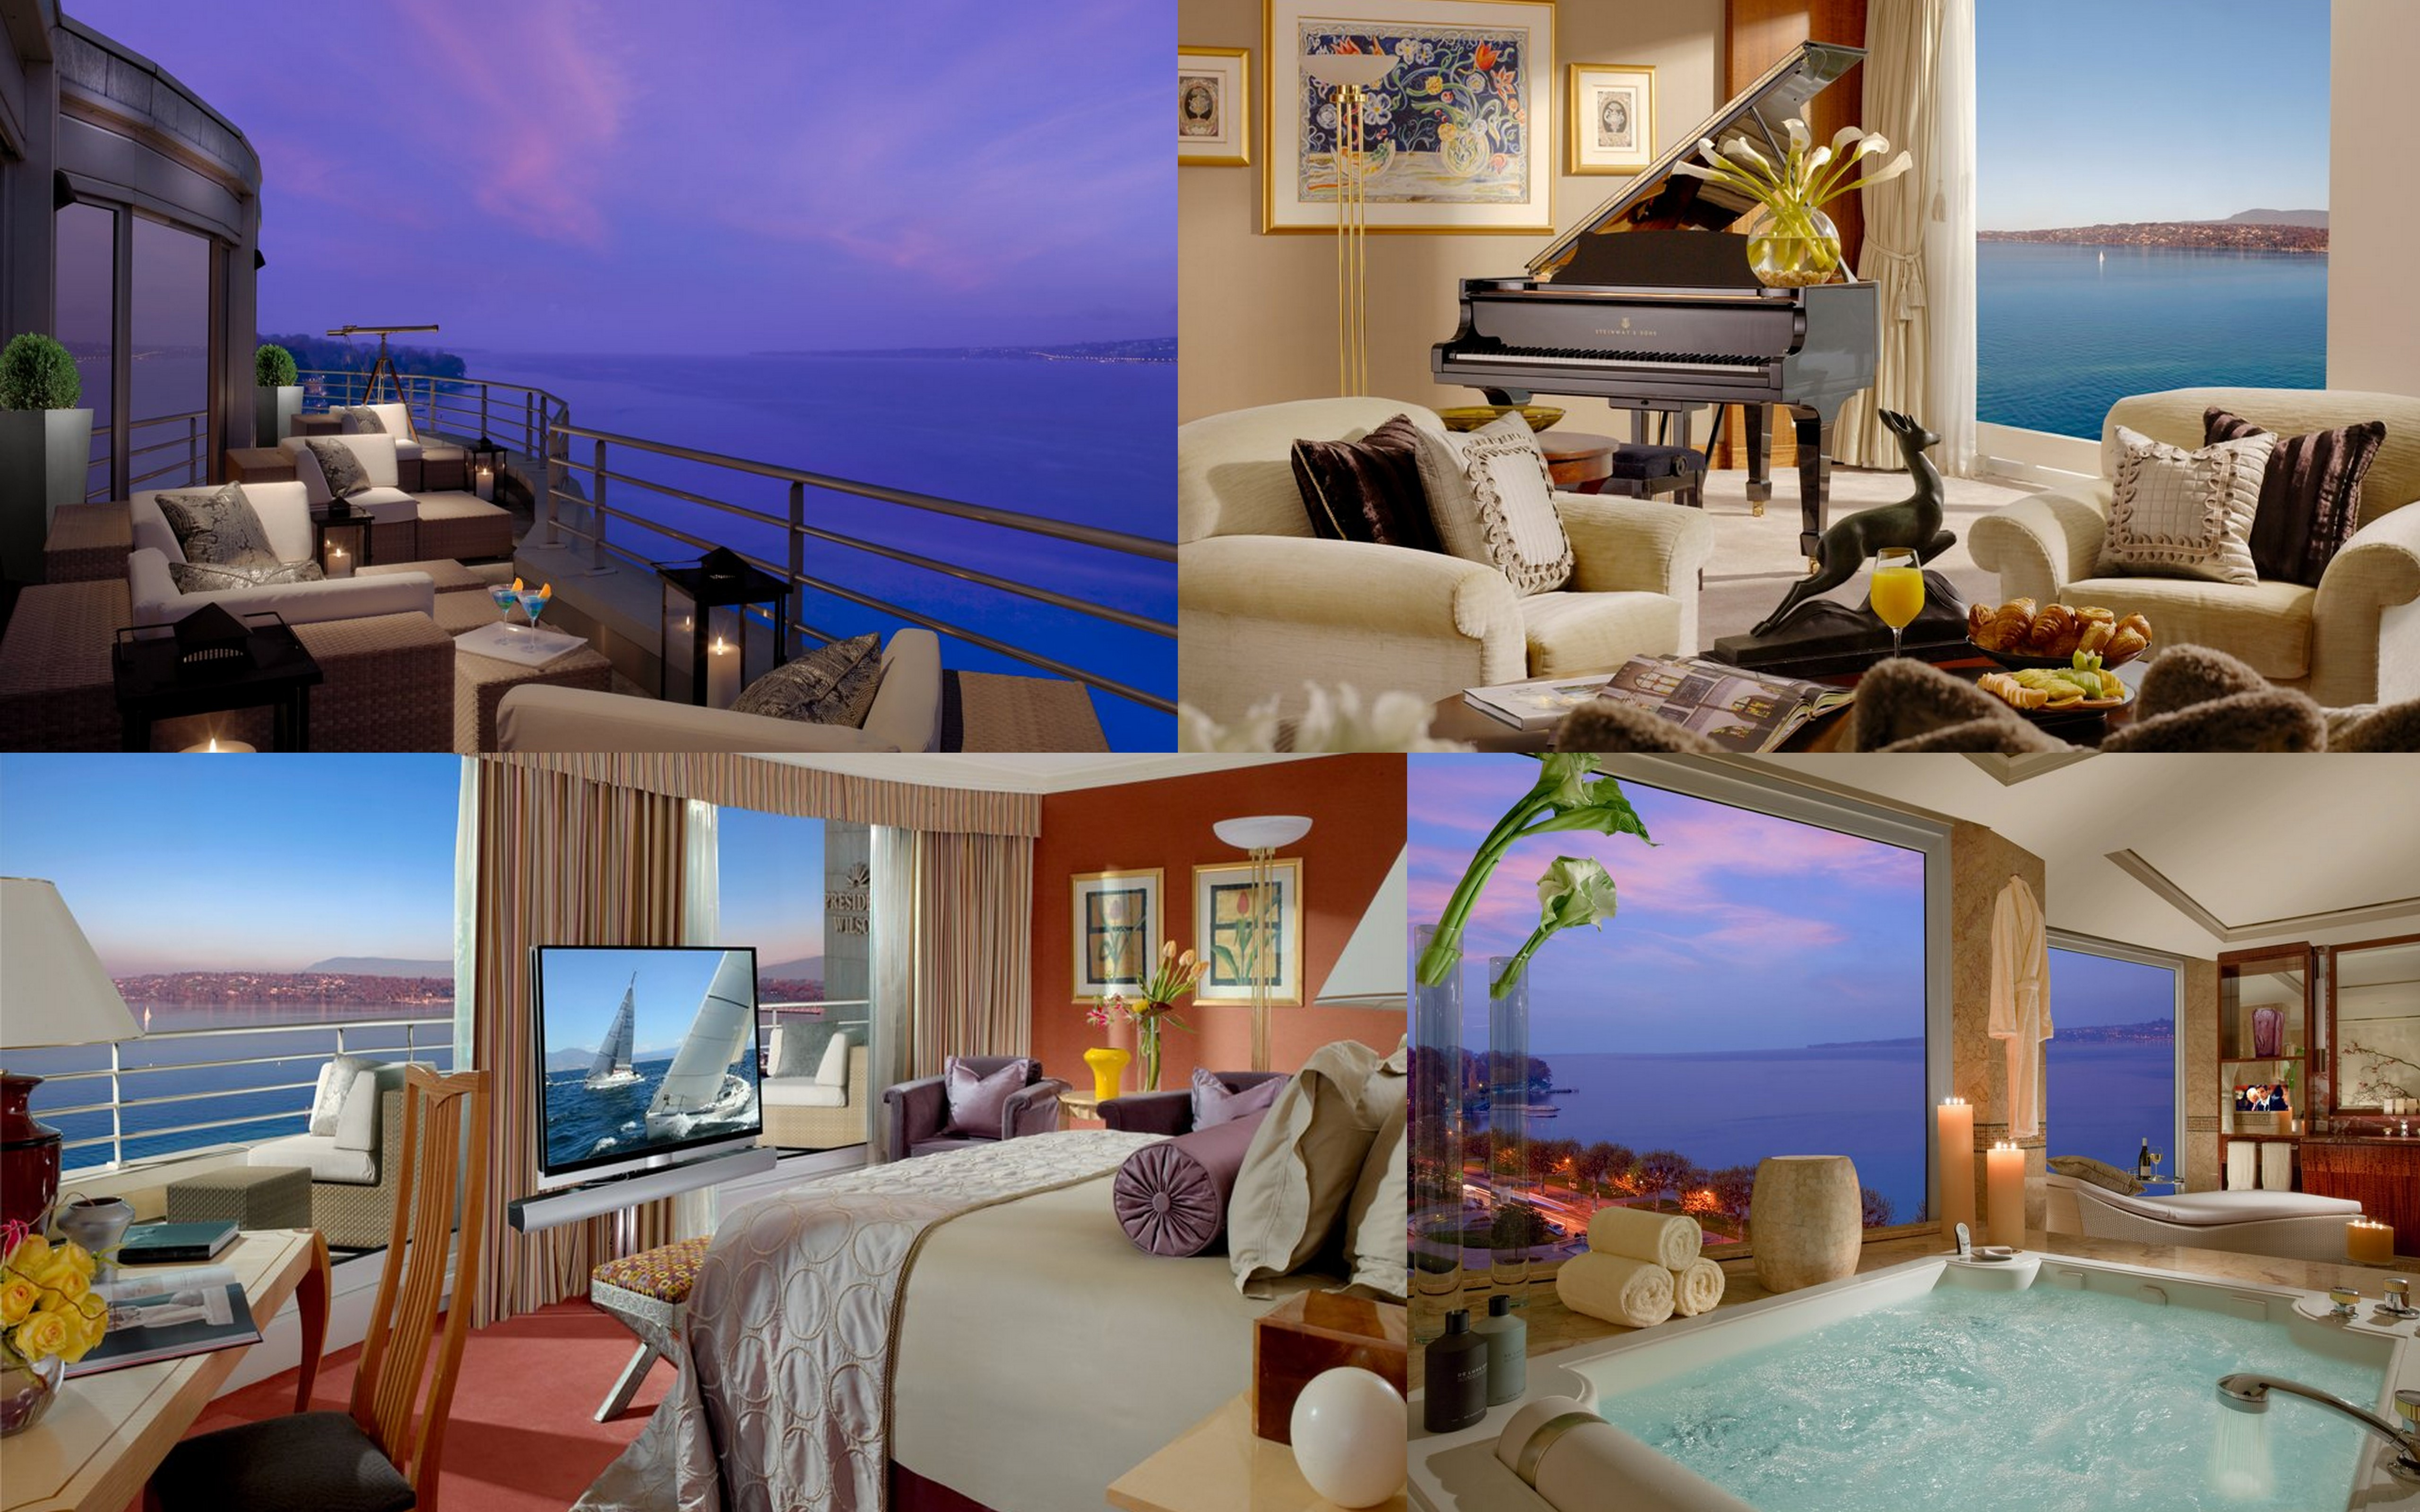 See-What-The-Most-Expensive-Hotel-Suite-In-The-World-Looks-Like-–83200-NGN-30-Million-Per-Night